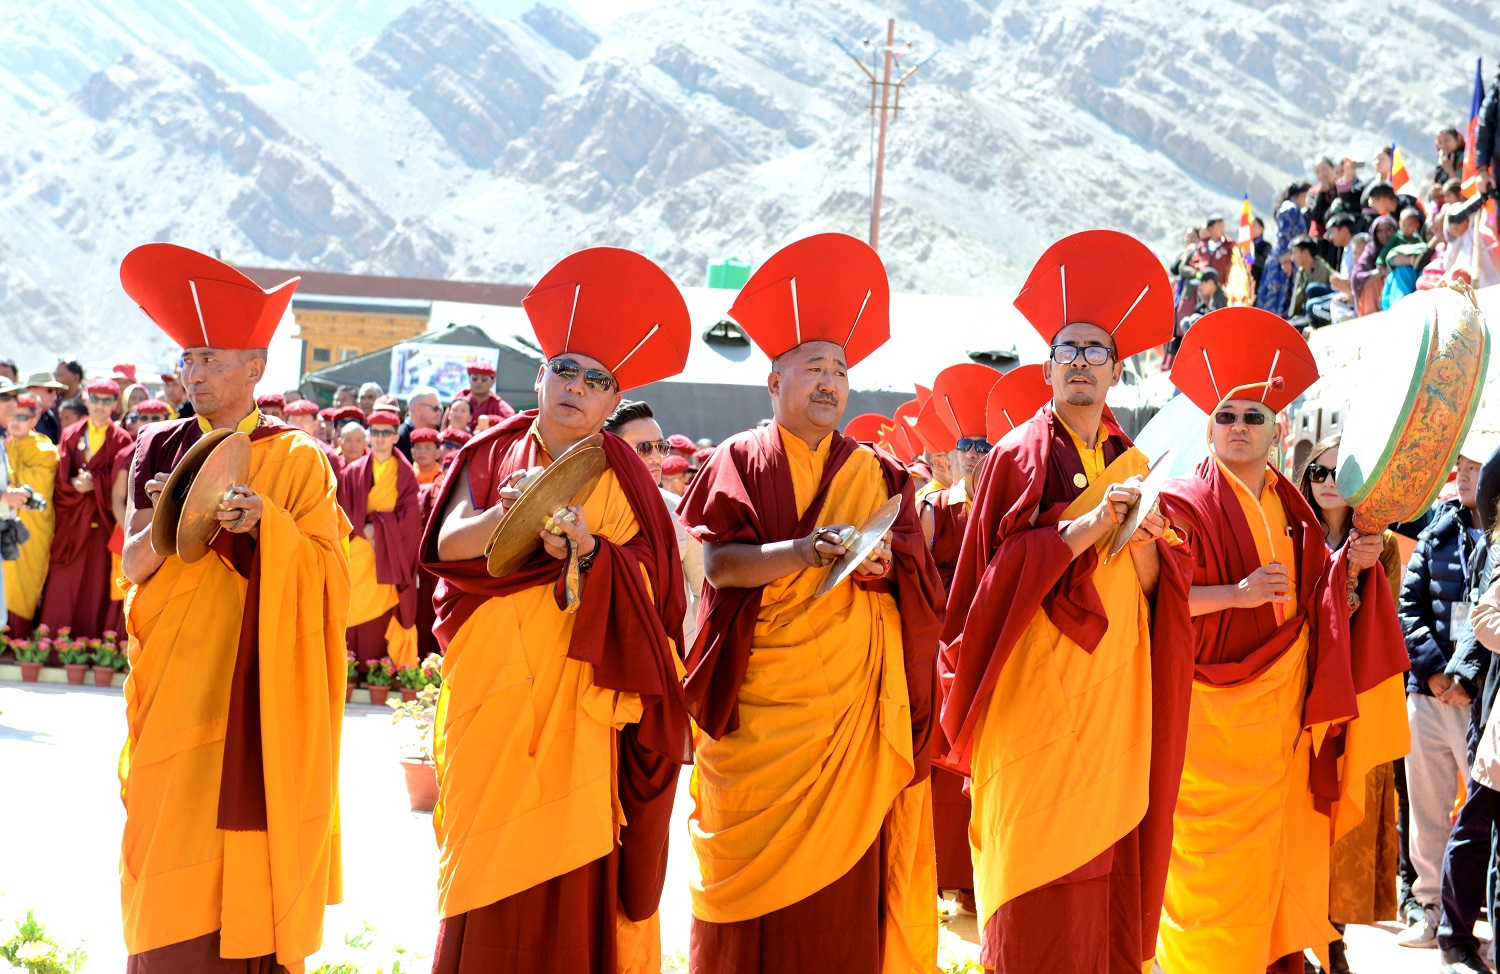 Monks wait for the arrival of the Six Bone Ornaments